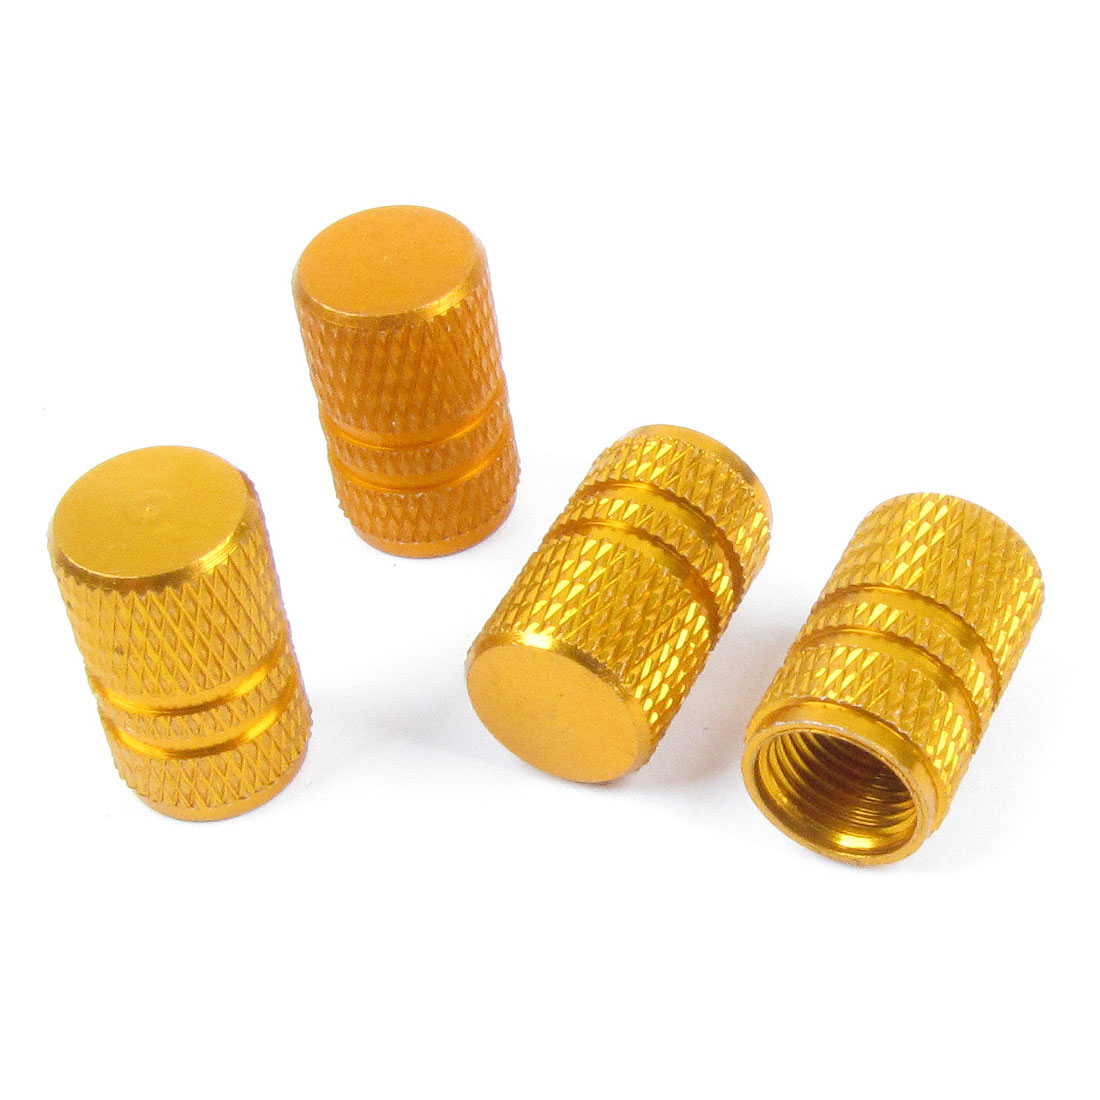 Replacement Alloy Car Auto Orange Tyre Tire Valve Covers 4 Pcs